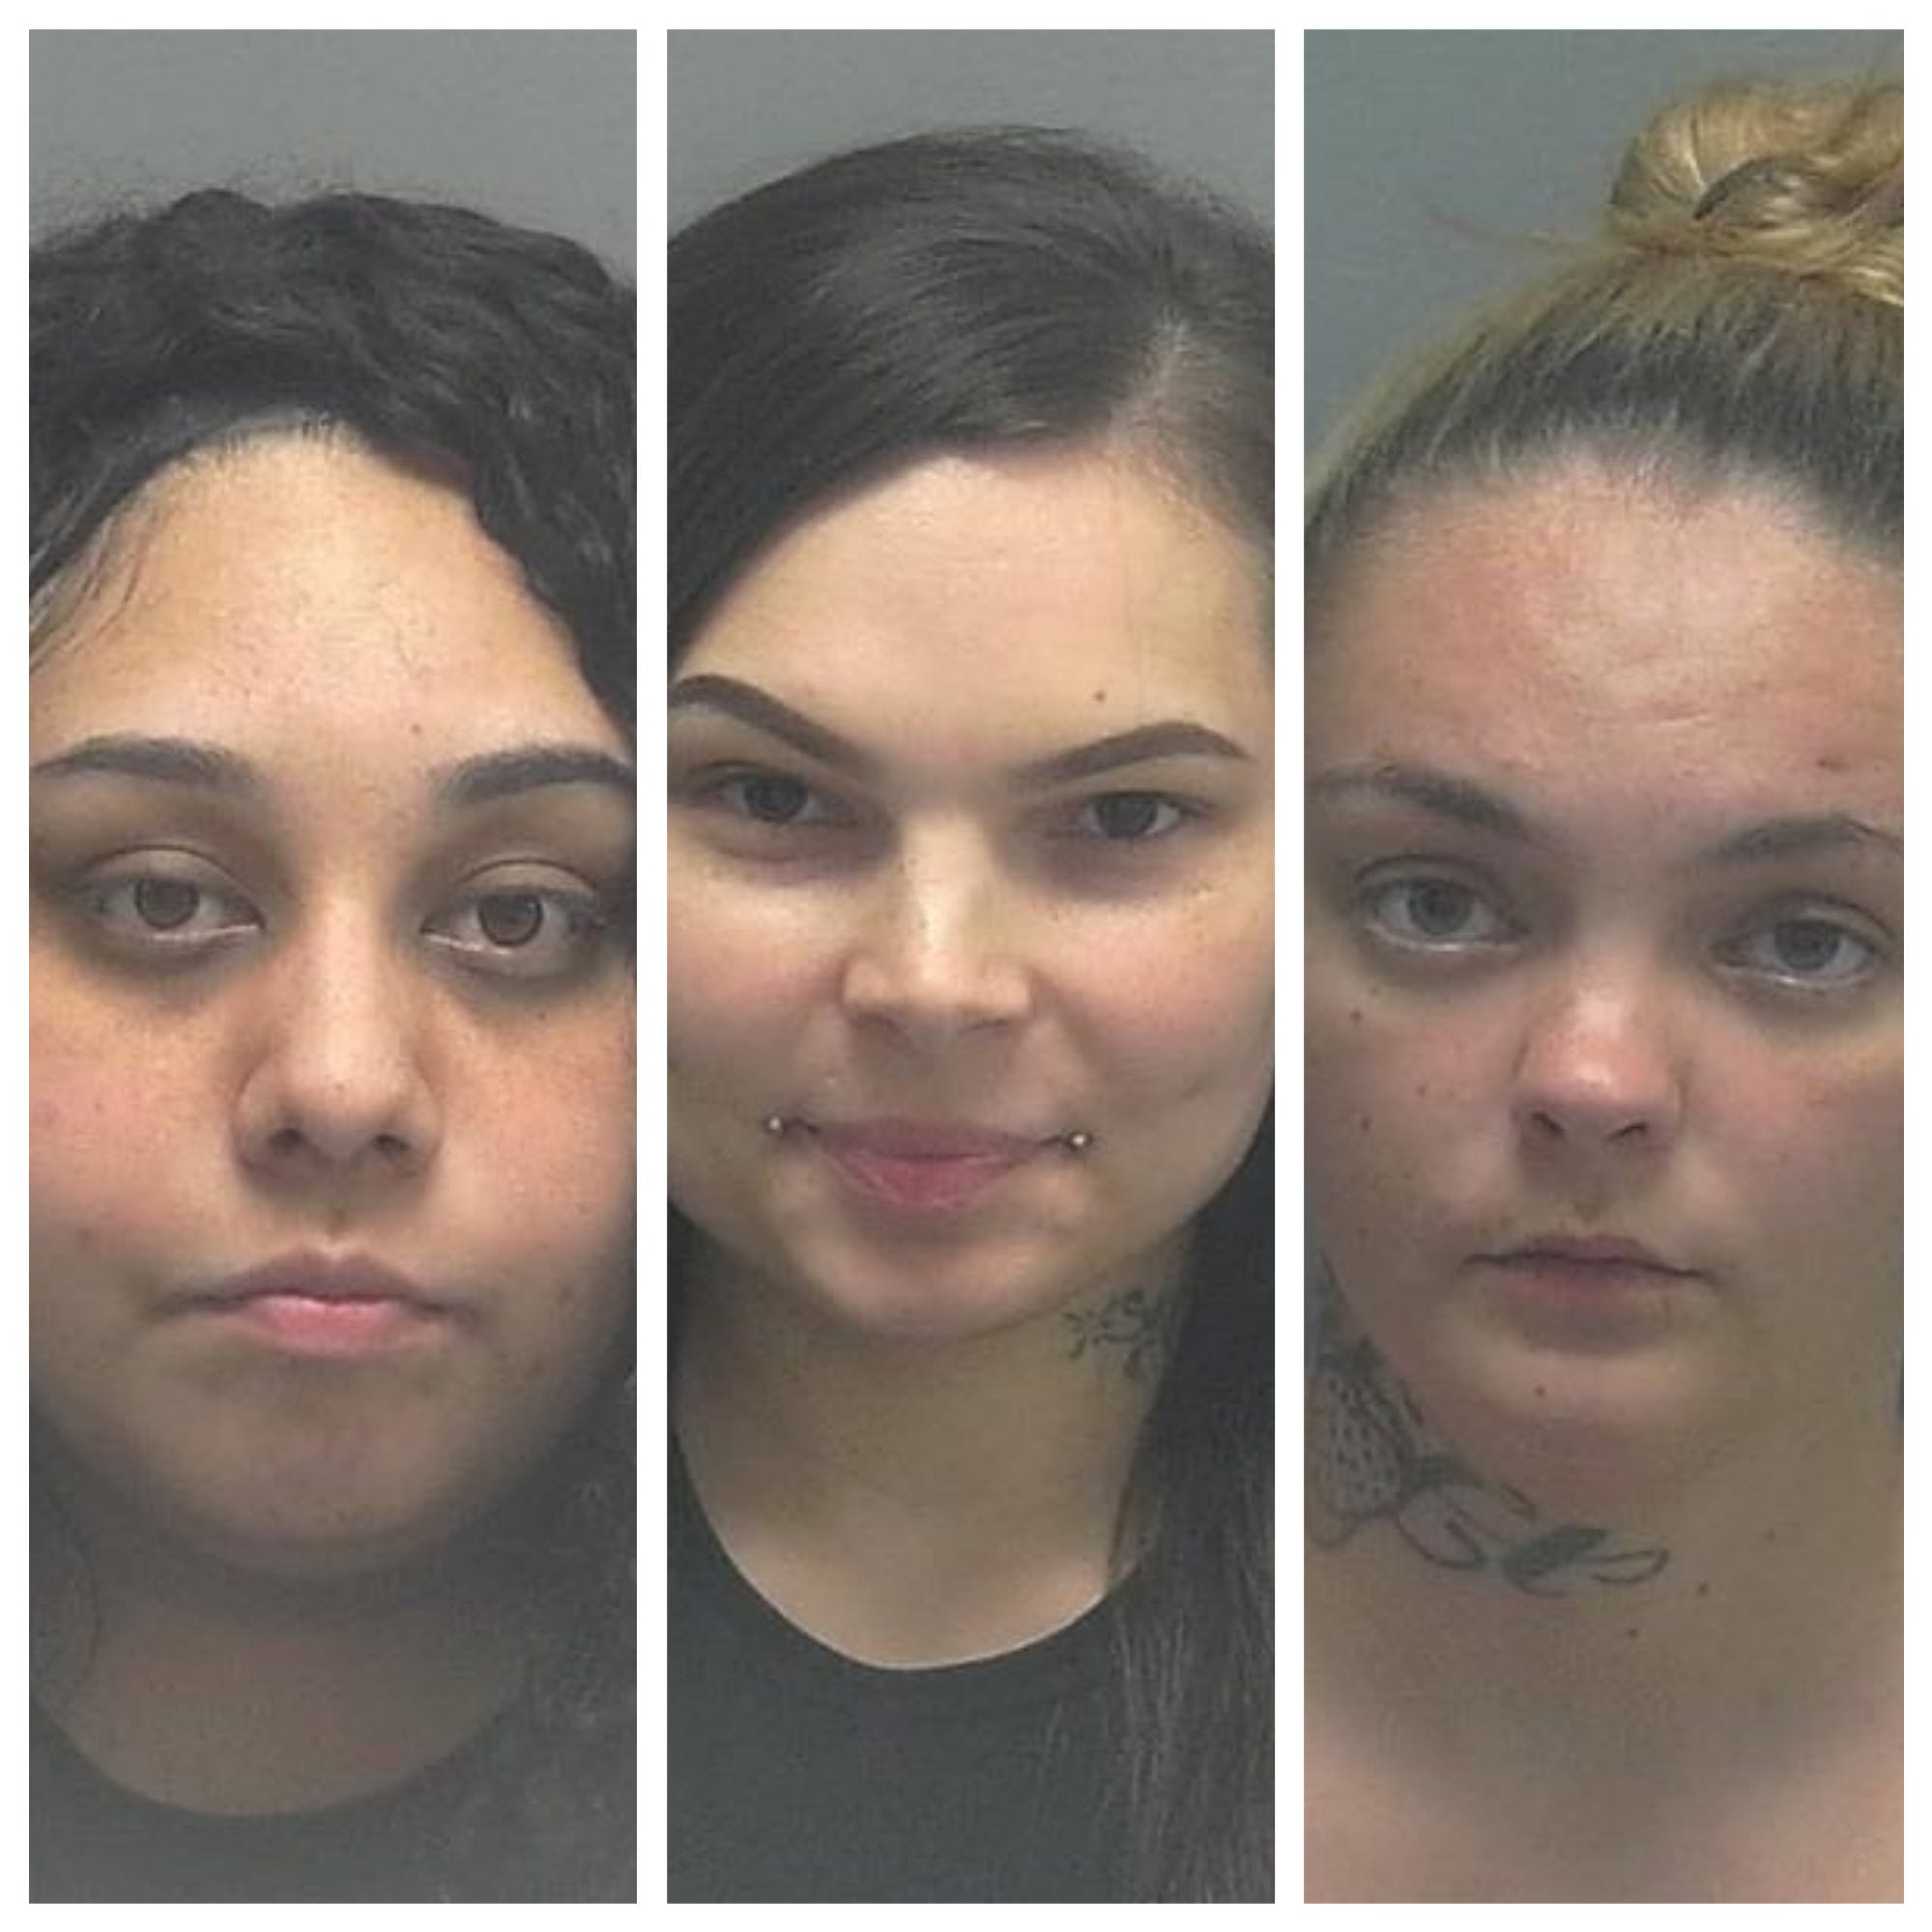 3 Lee County women called 'Felony Lane Gang' arrested in Indiana after high-speed chase